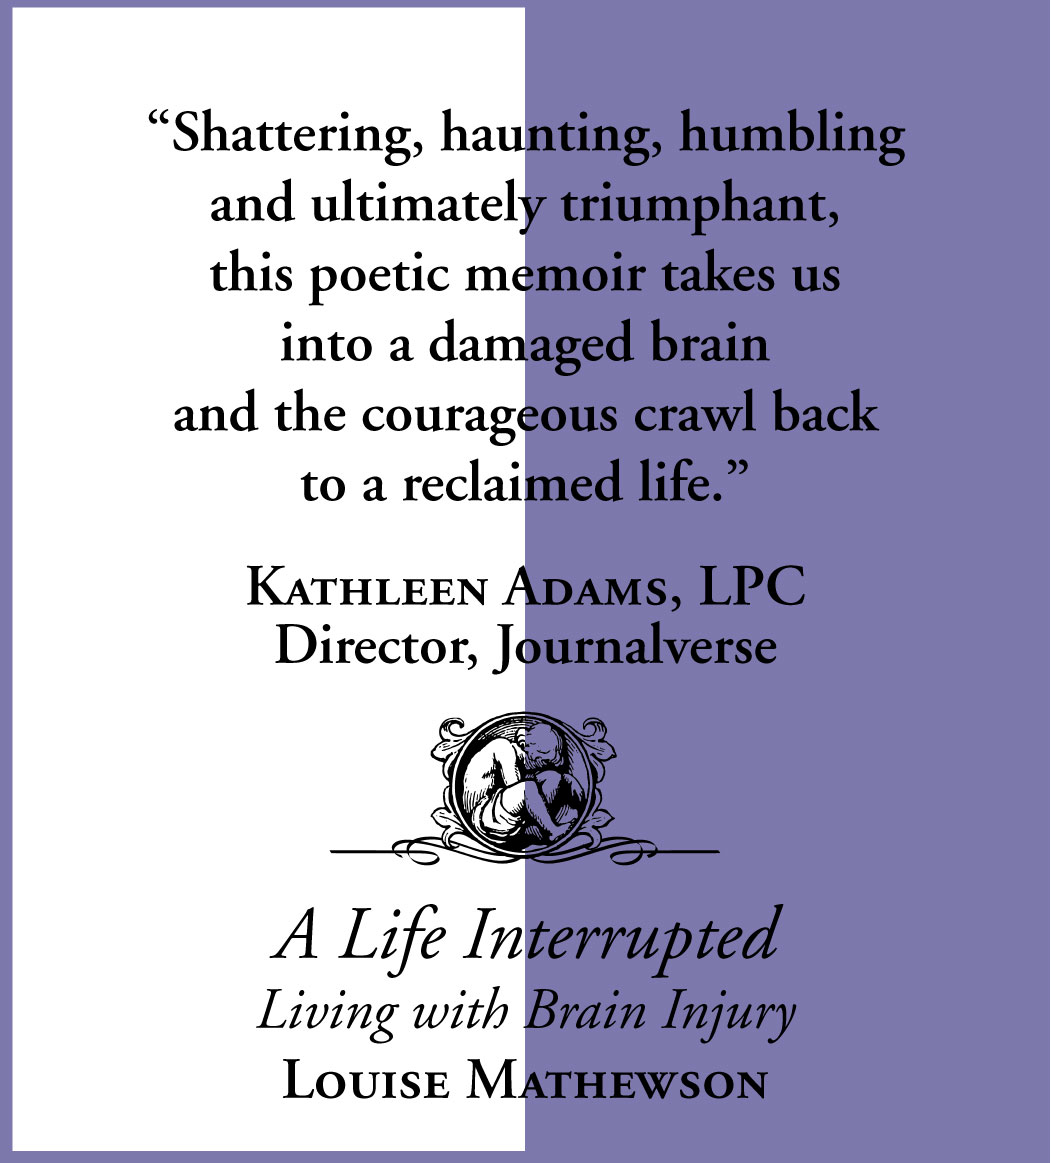 Kathleen Adams praise for a Life Interrupted: Living with Brain Injury by Louise Mathewson